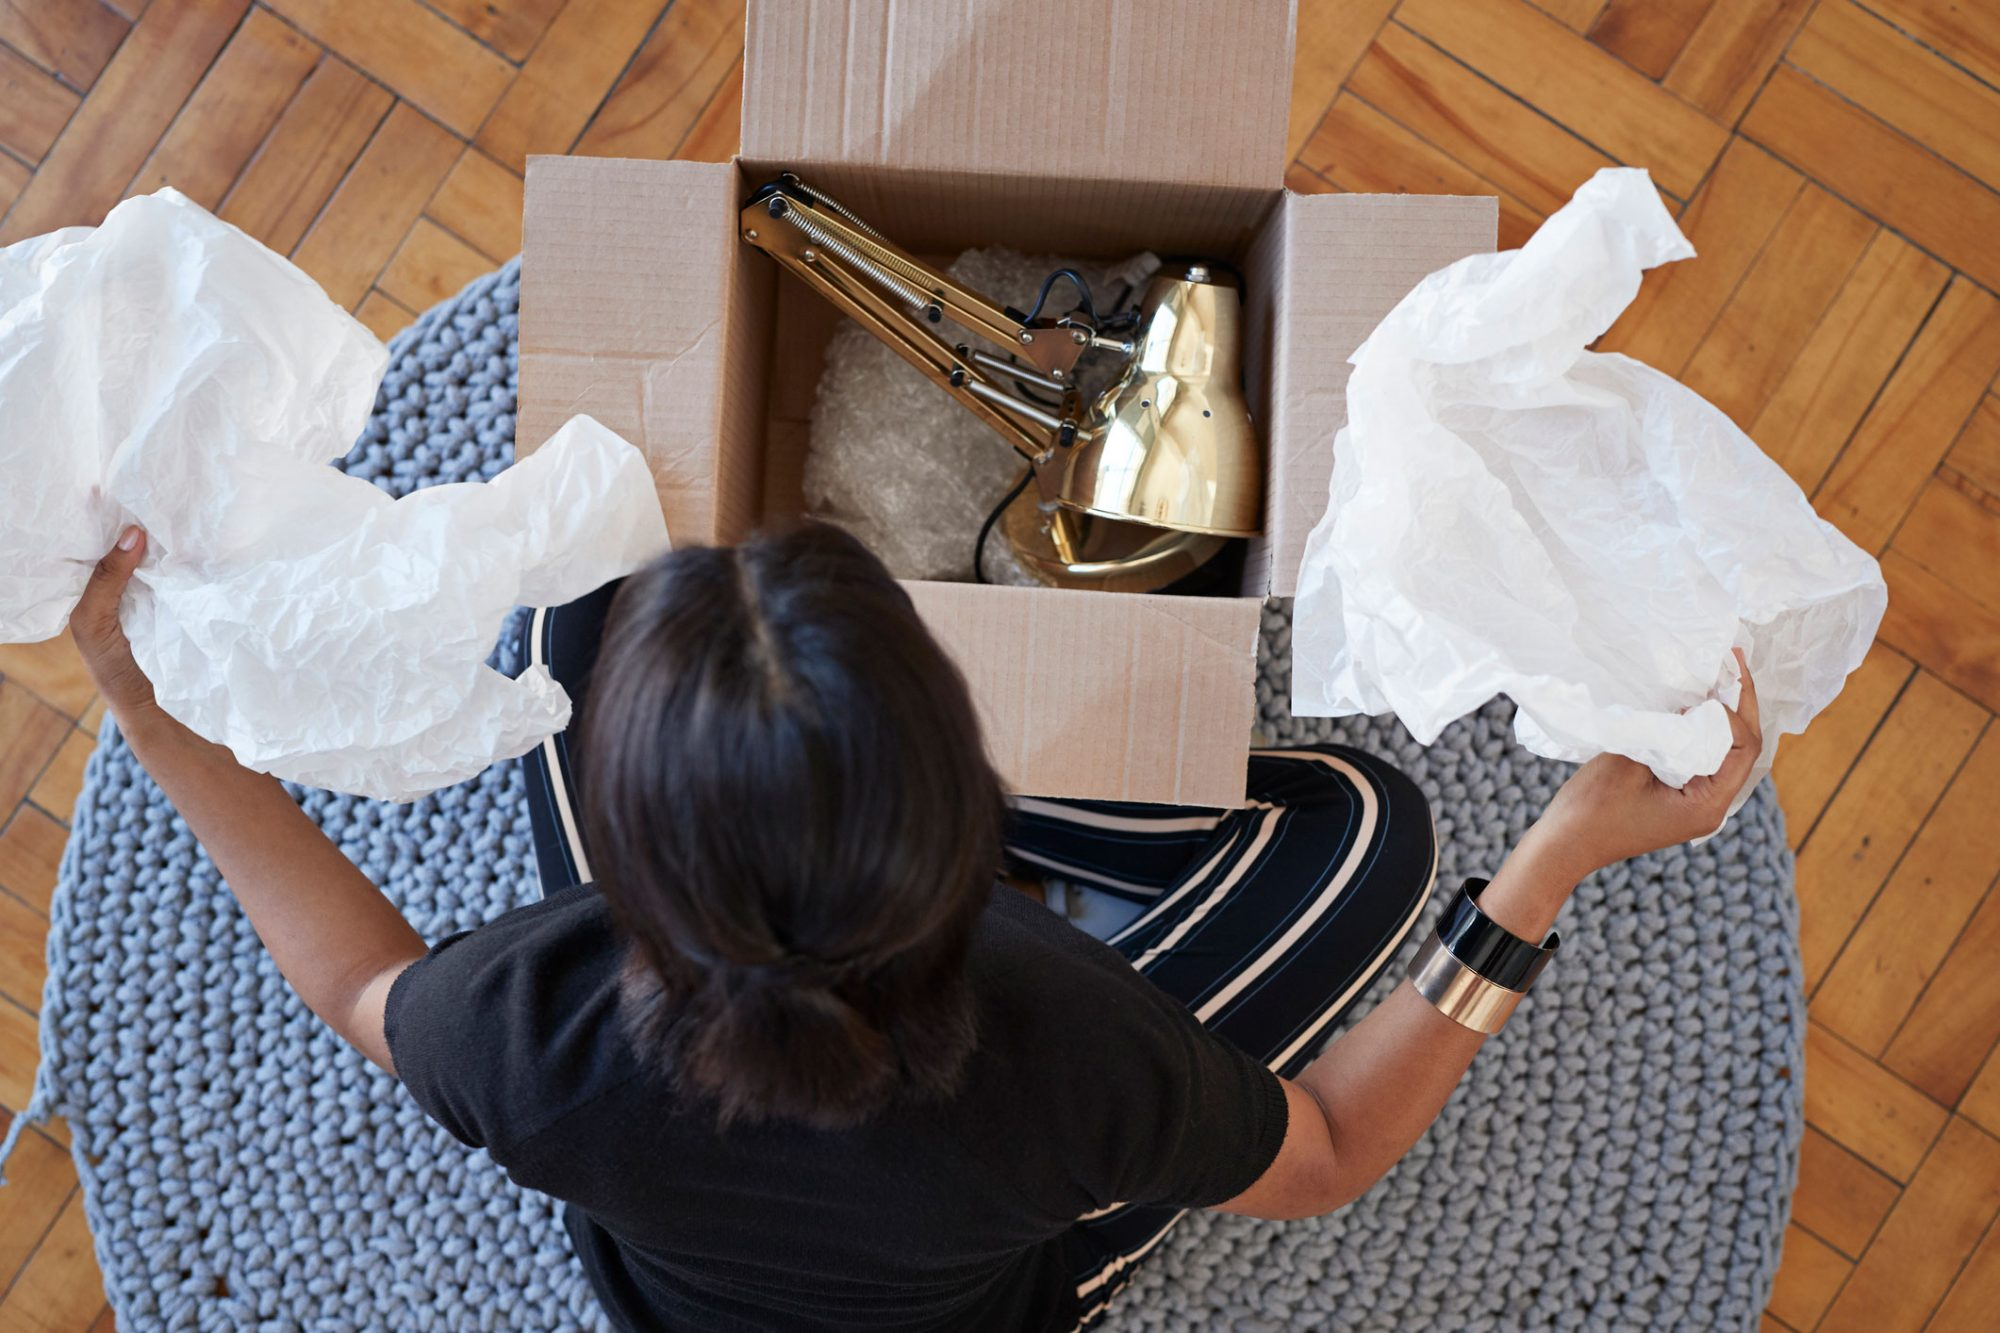 WATCH: These Are the Best Stores for Buying Furniture Online